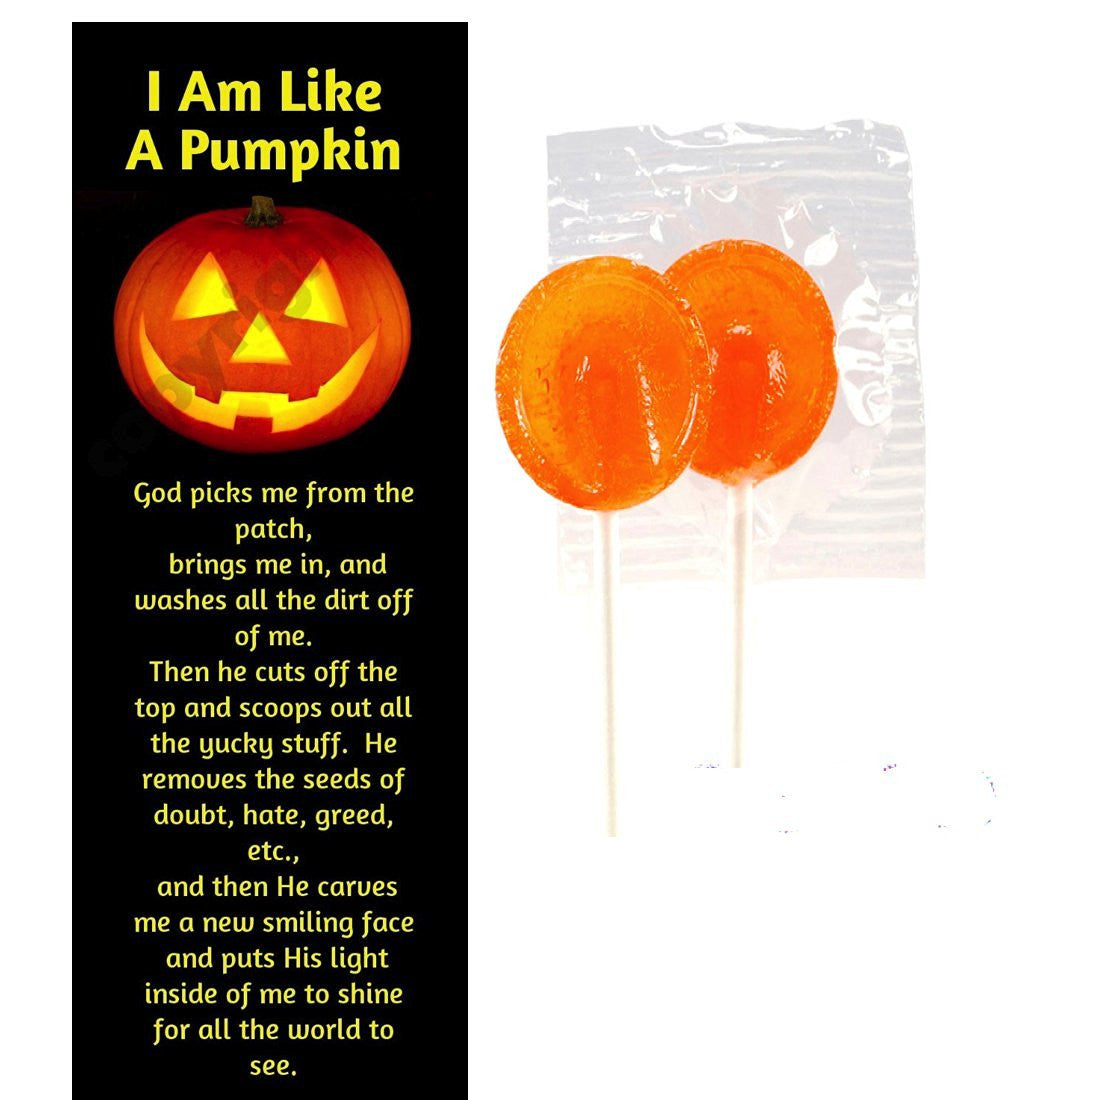 Inspirational Halloween Pumpkin Prayer Bookmarks With Orange Citrus Lollipops (Pack of 12)